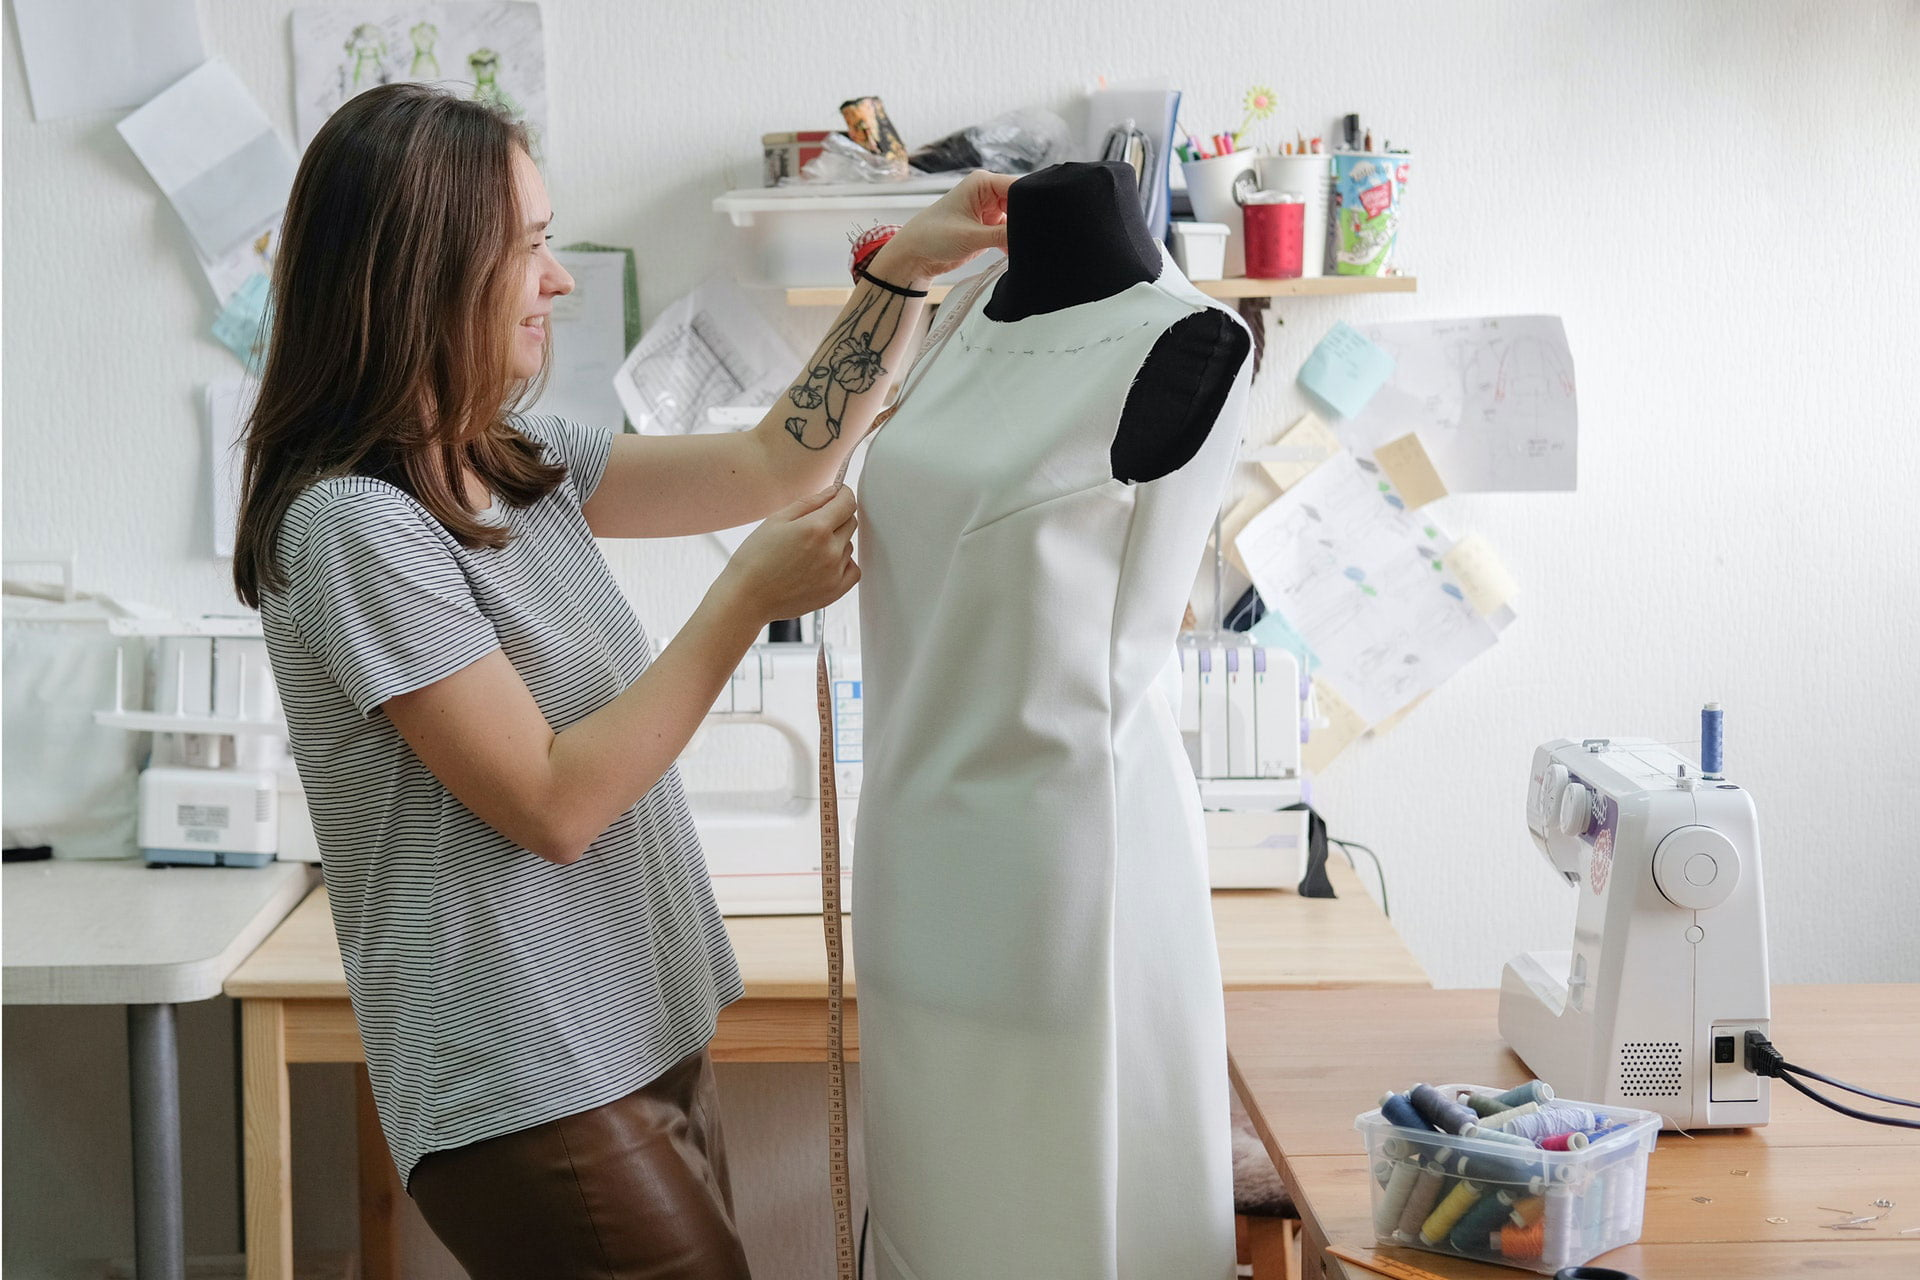 How to Alter A Dress to Make It Bigger